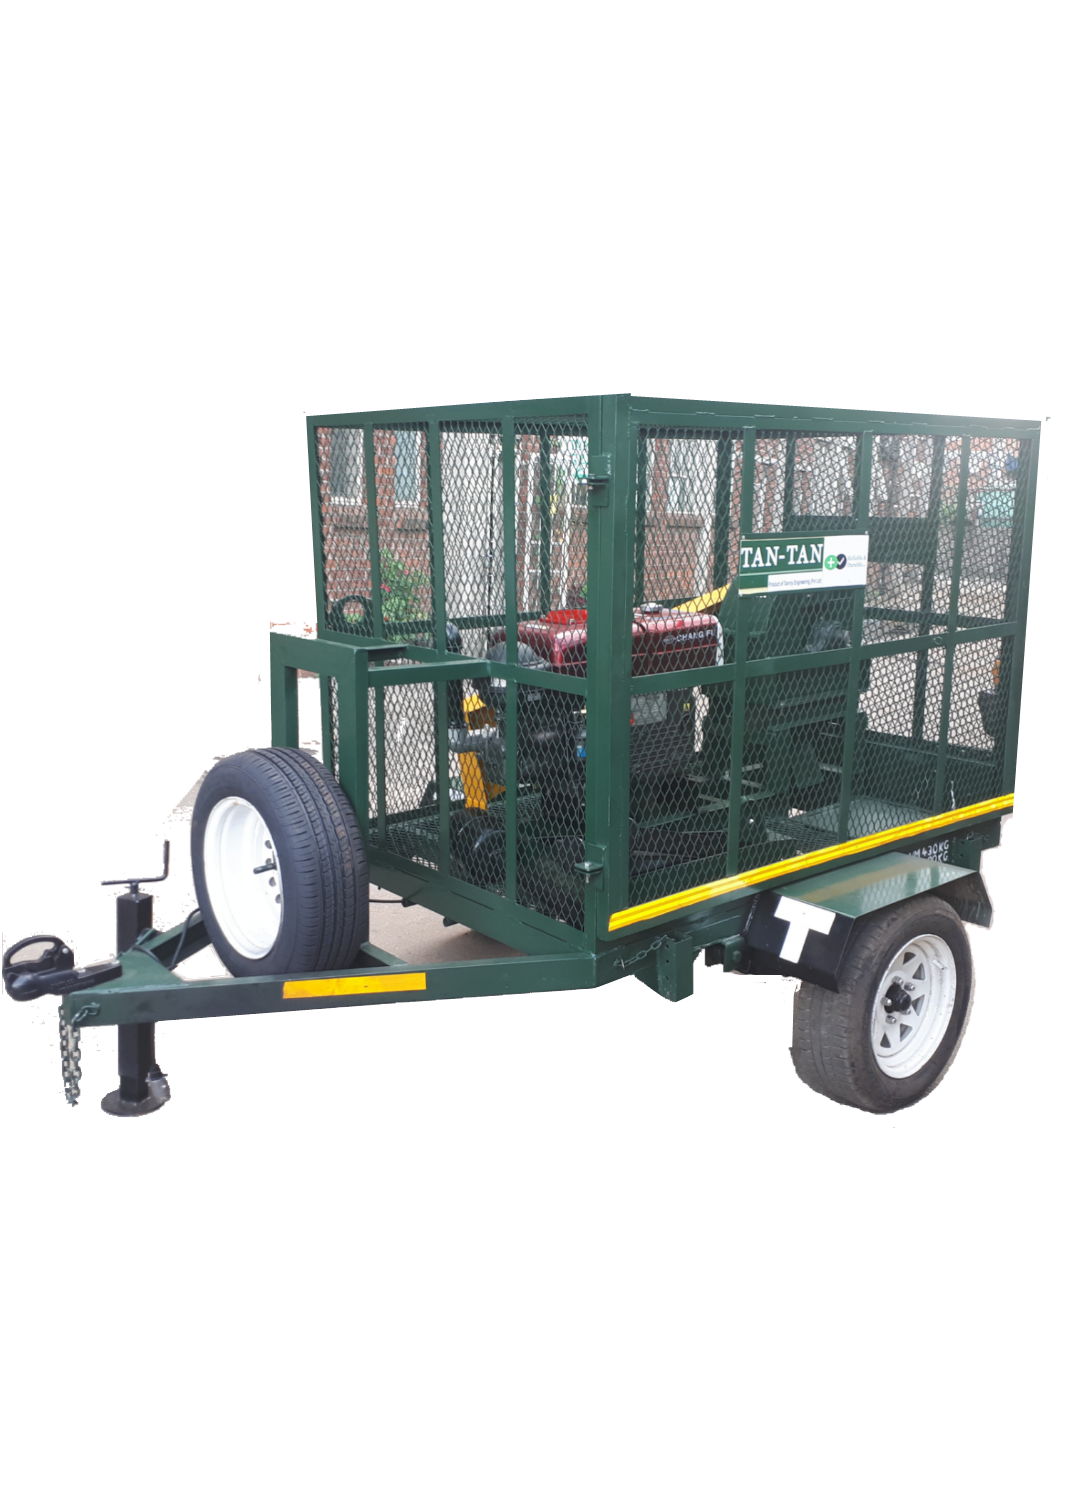 https://www.tanroy.com/products/mobile_gravity_mill/8aLp6ONLyAZw433834